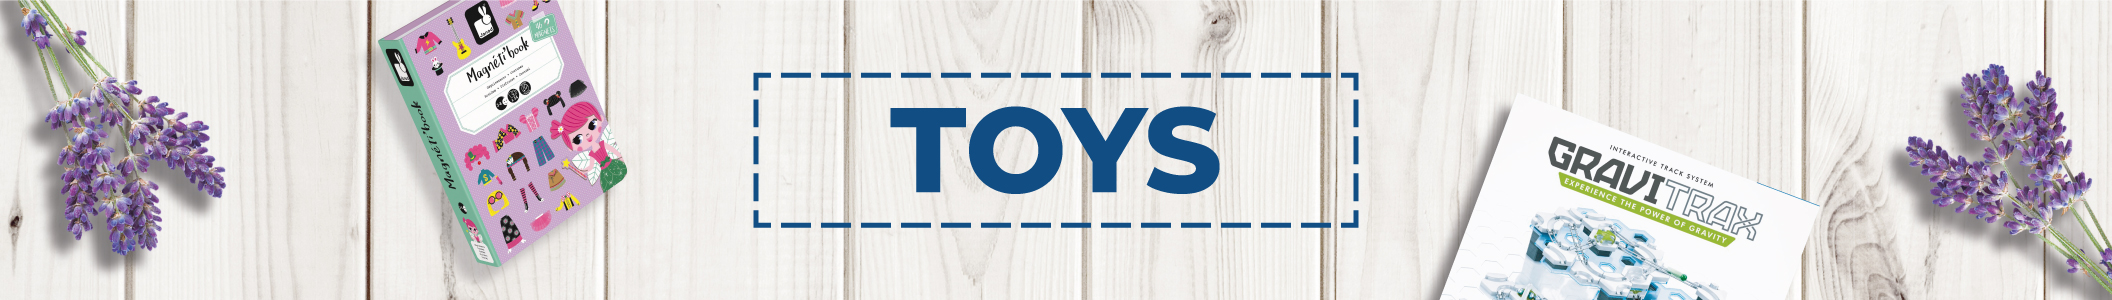 Top Picks - Toys Banner 2112x200